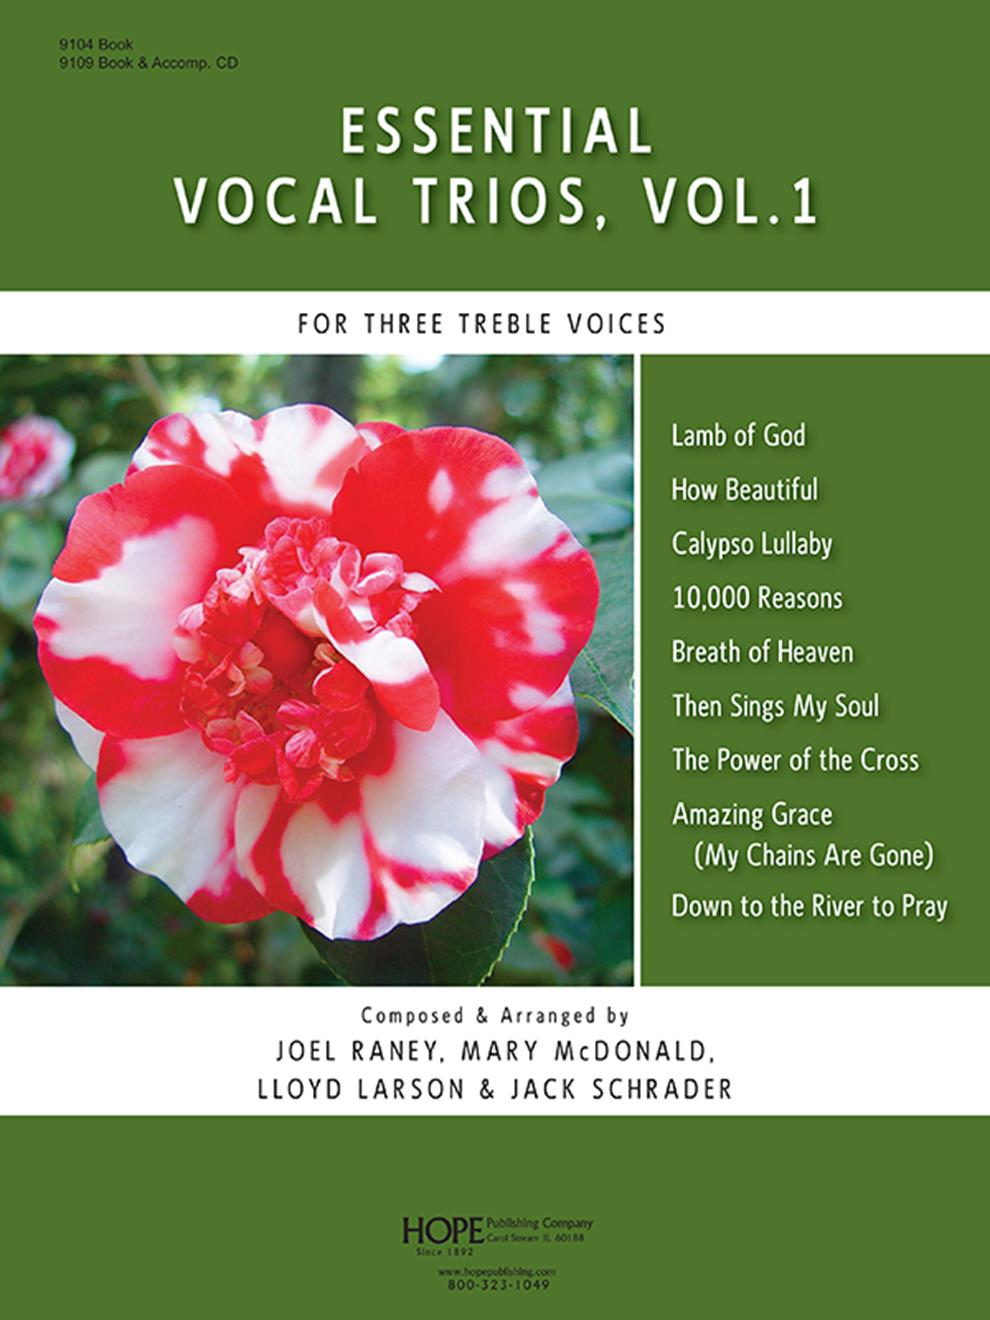 Essential Vocal Trios Vol 1 Cover Image